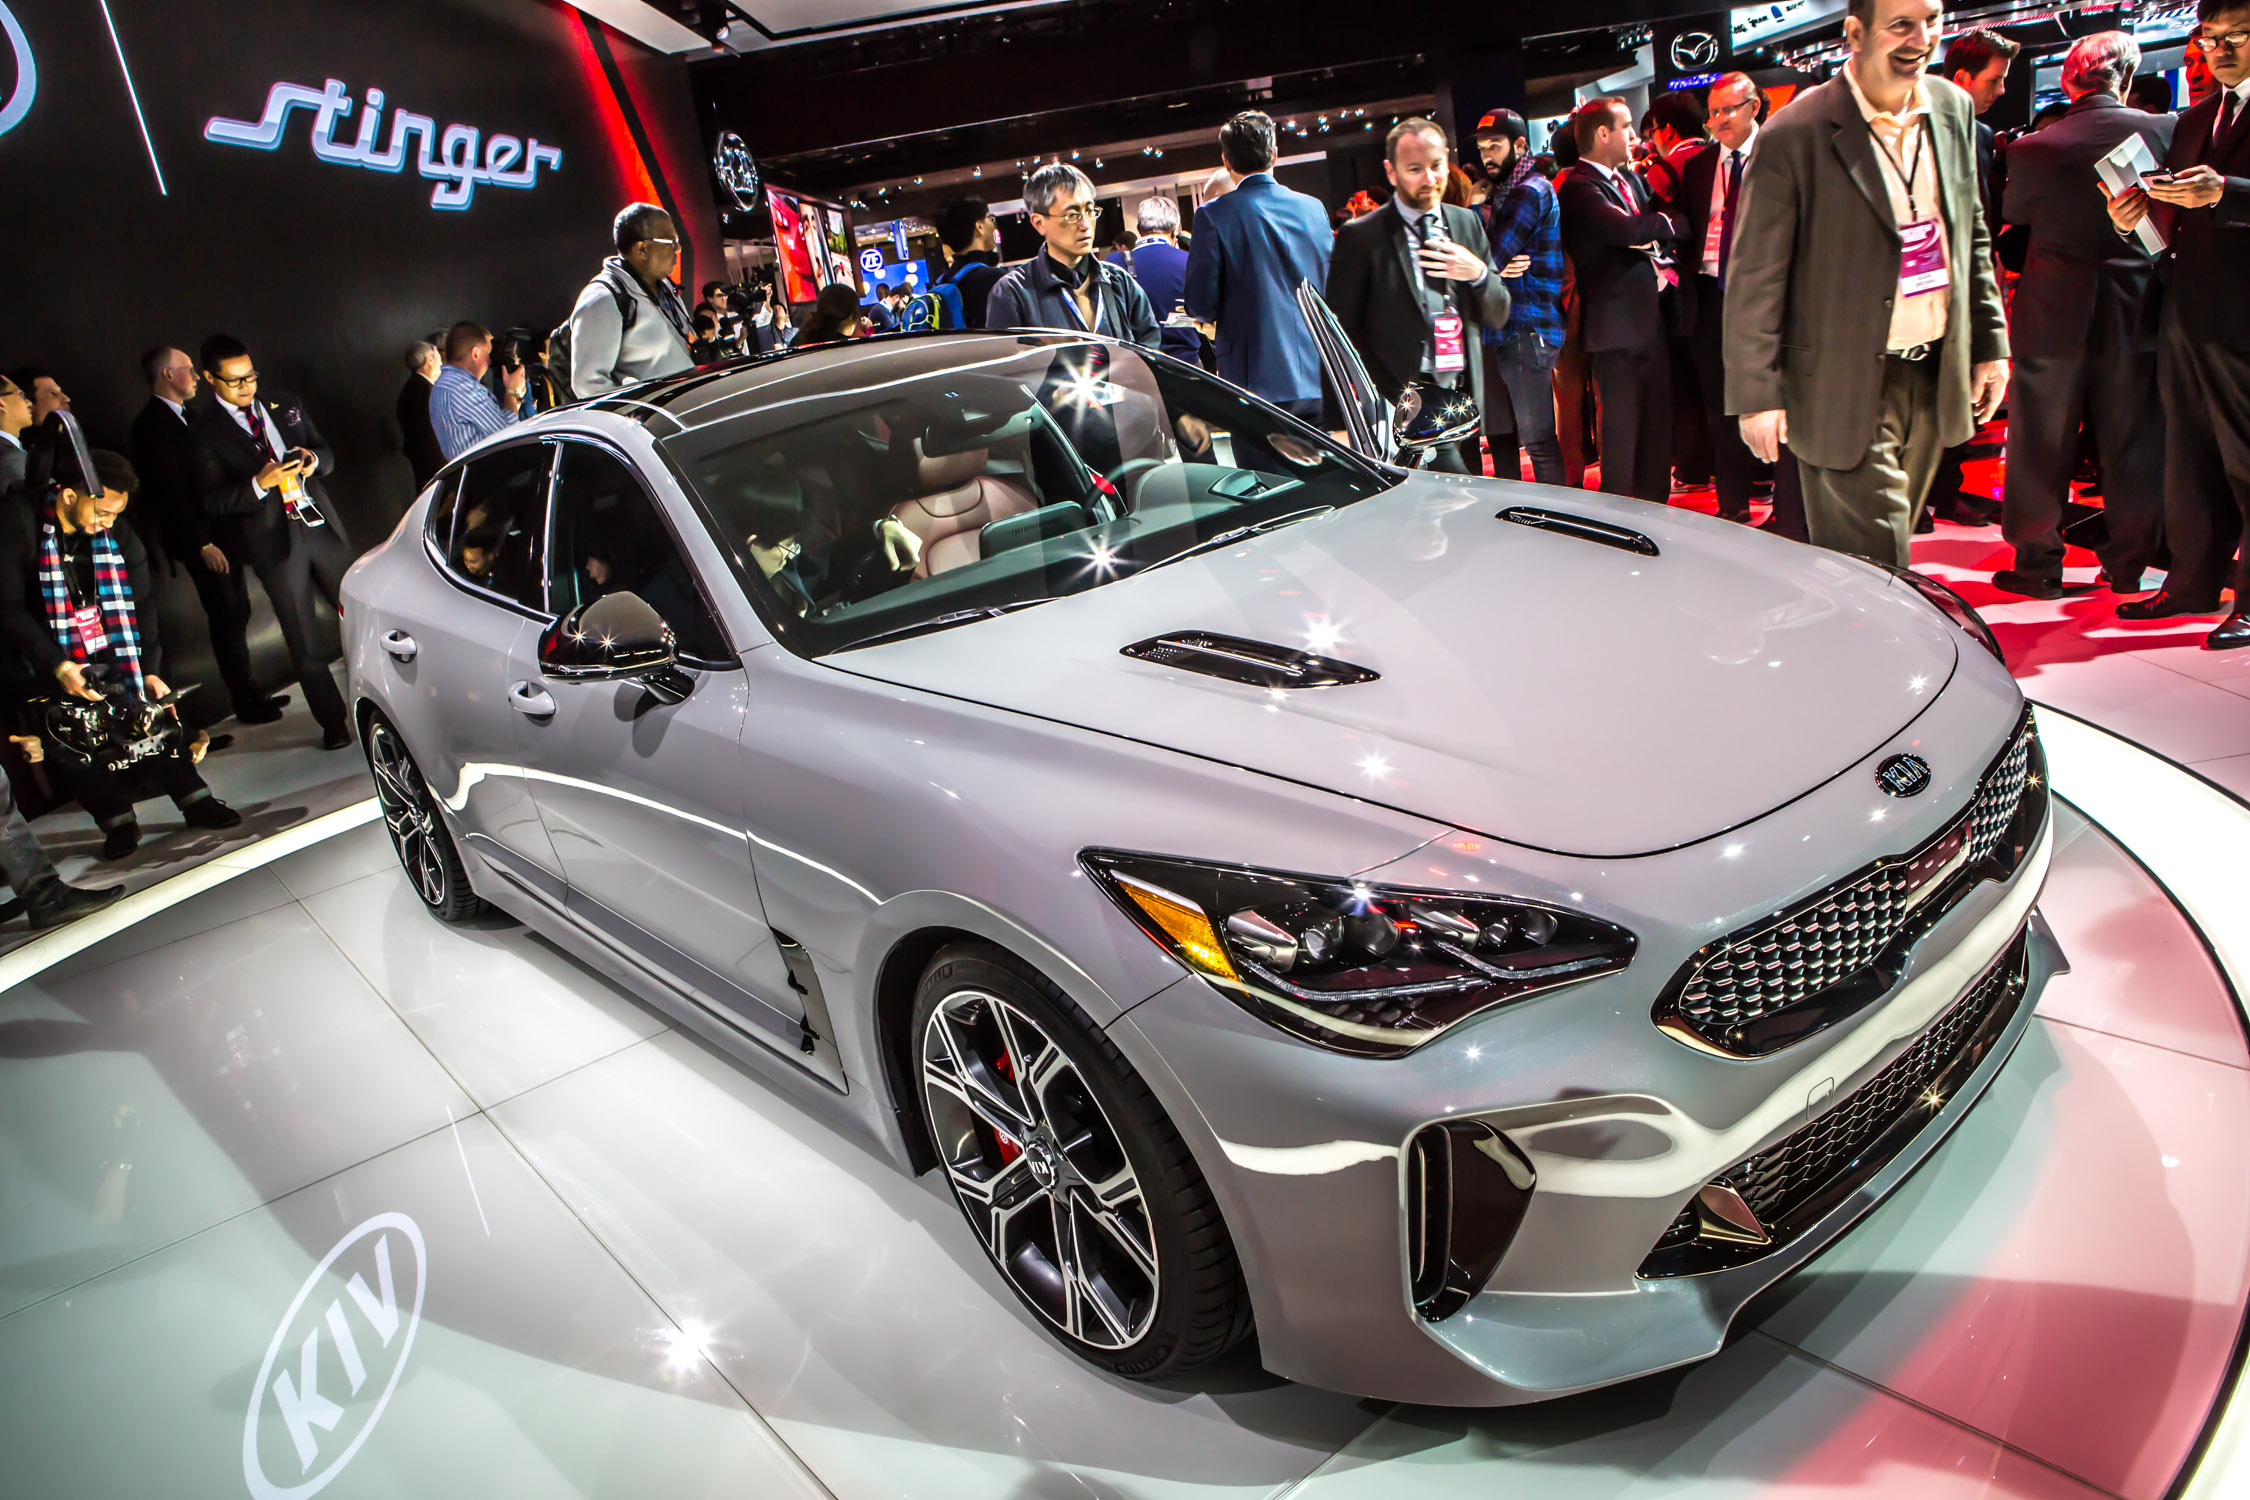 2017 Detroit Auto Show: Photo Highlights » AutoNXT